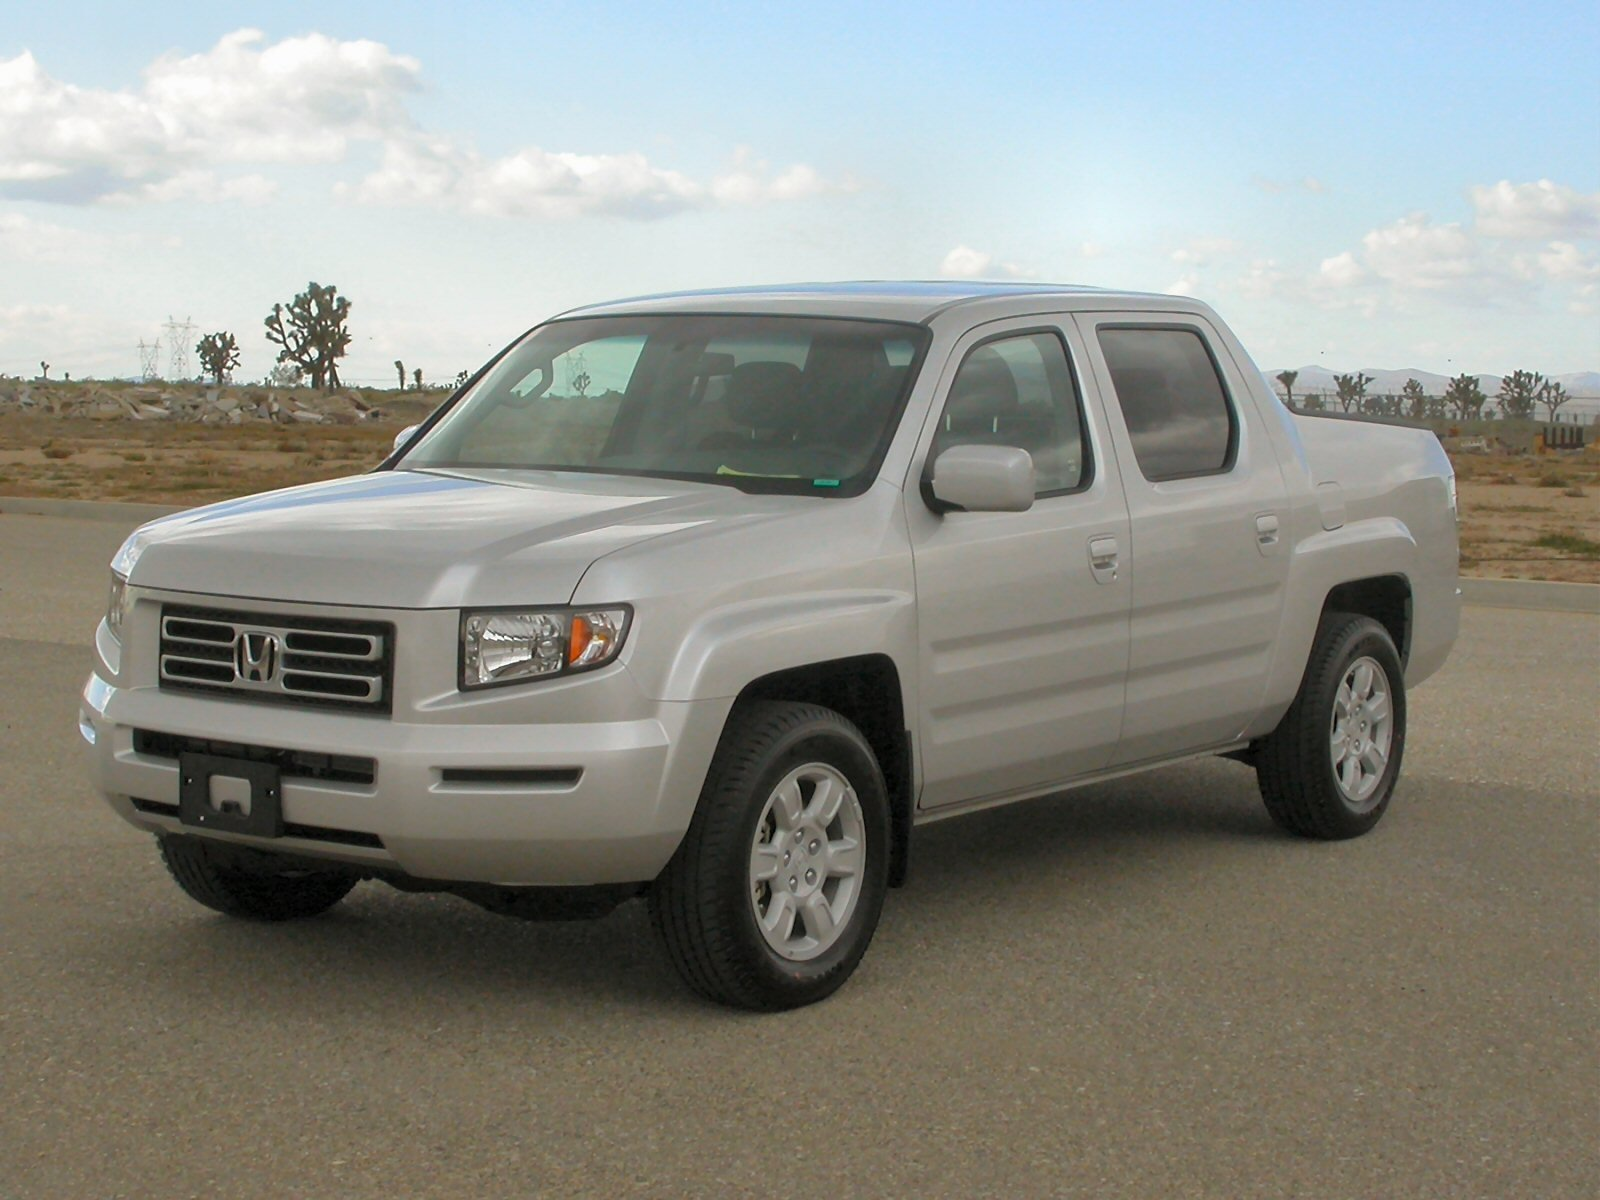 2006 honda ridgeline review top speed. Black Bedroom Furniture Sets. Home Design Ideas